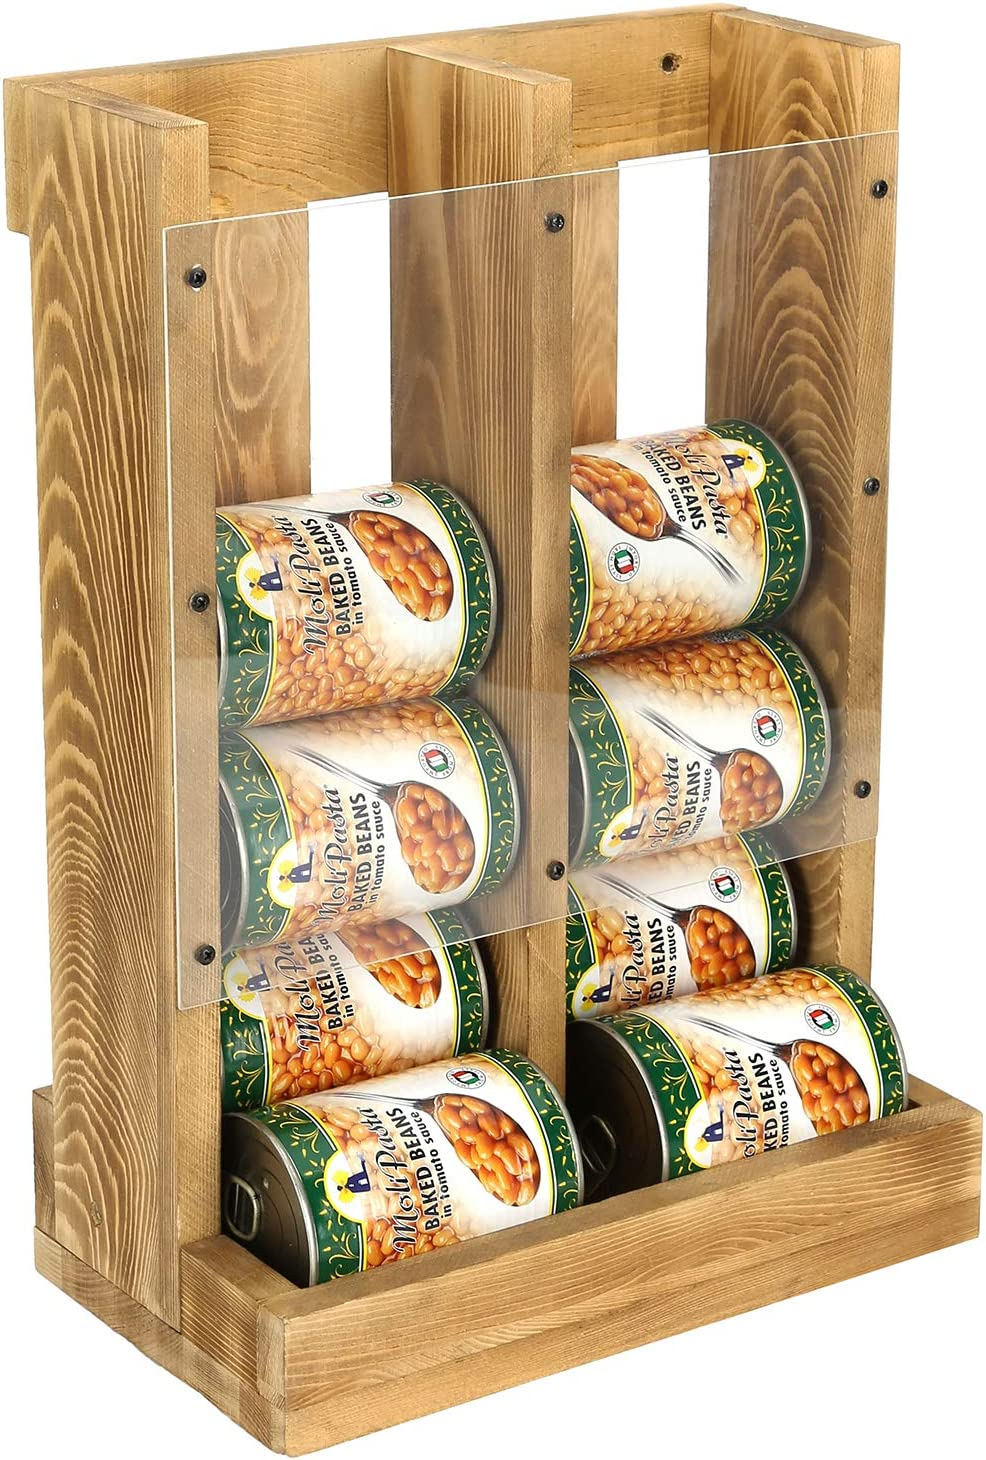 MyGift Rustic Brown Wood and Acrylic Wall Mounted or Tabletop Stacking Can Organizer Dispenser Rack, Holds 12 Canned Food or Soda Cans